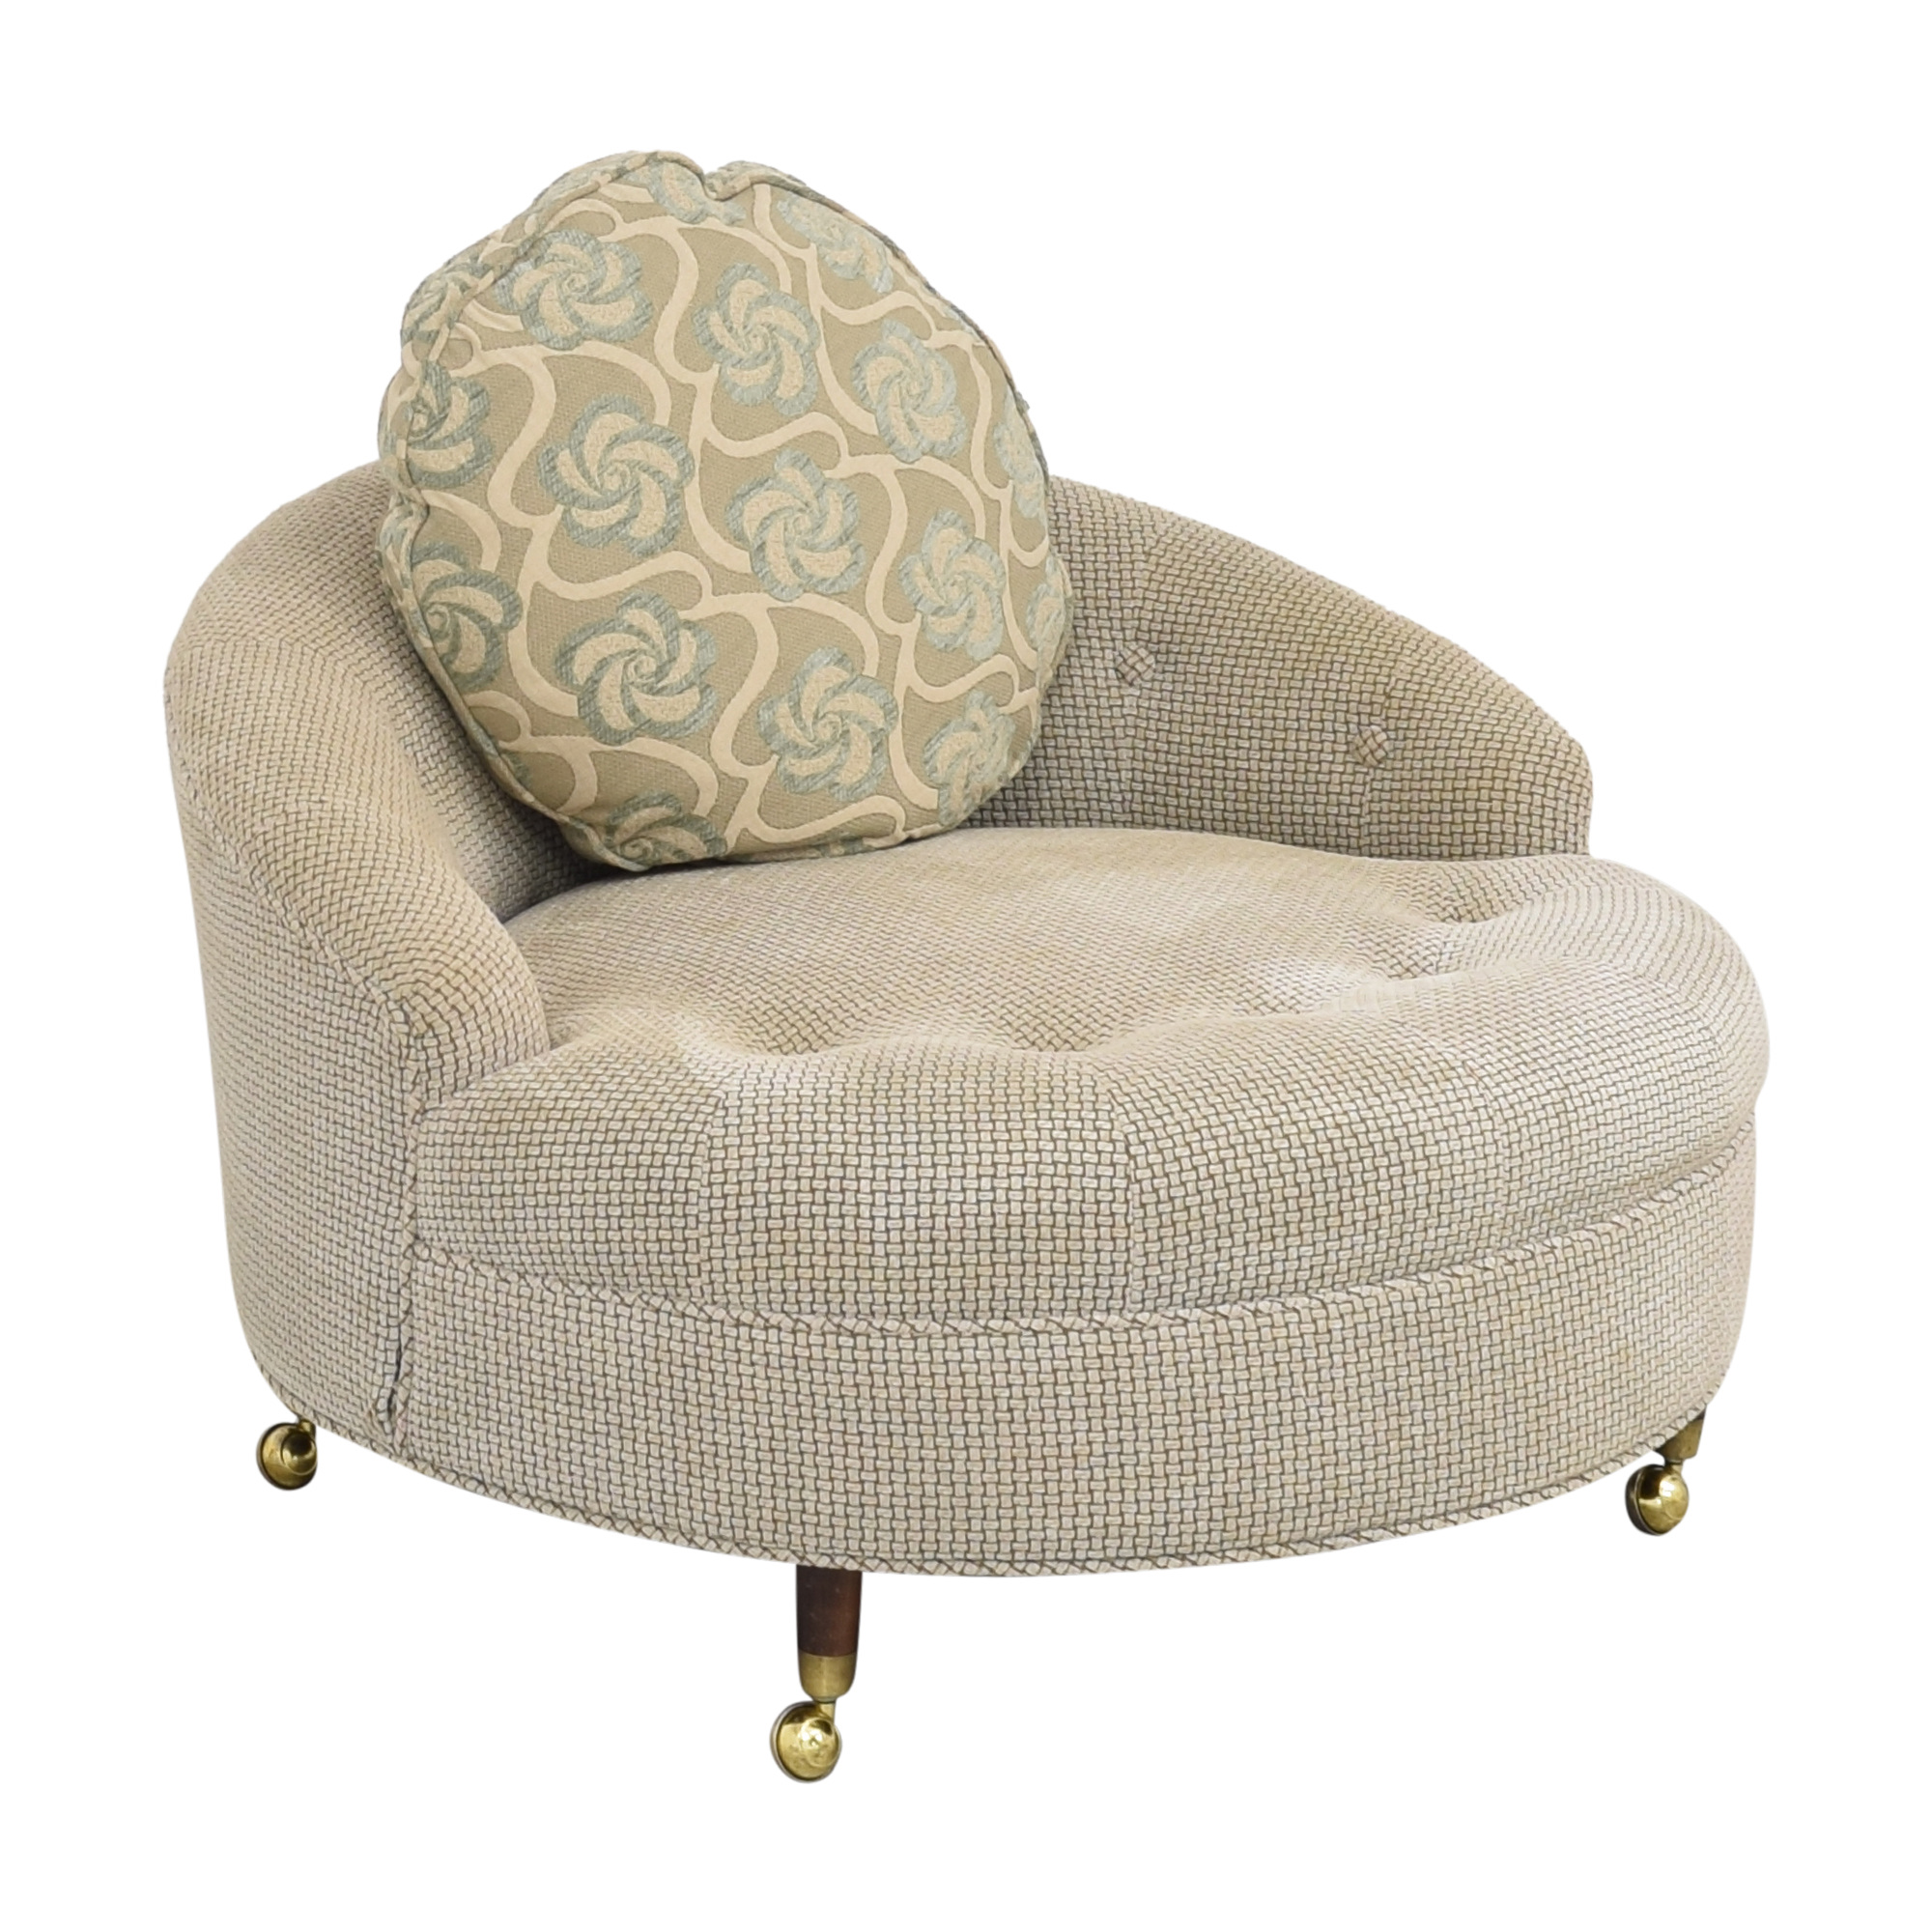 Tufted Barrel Lounge Chair used